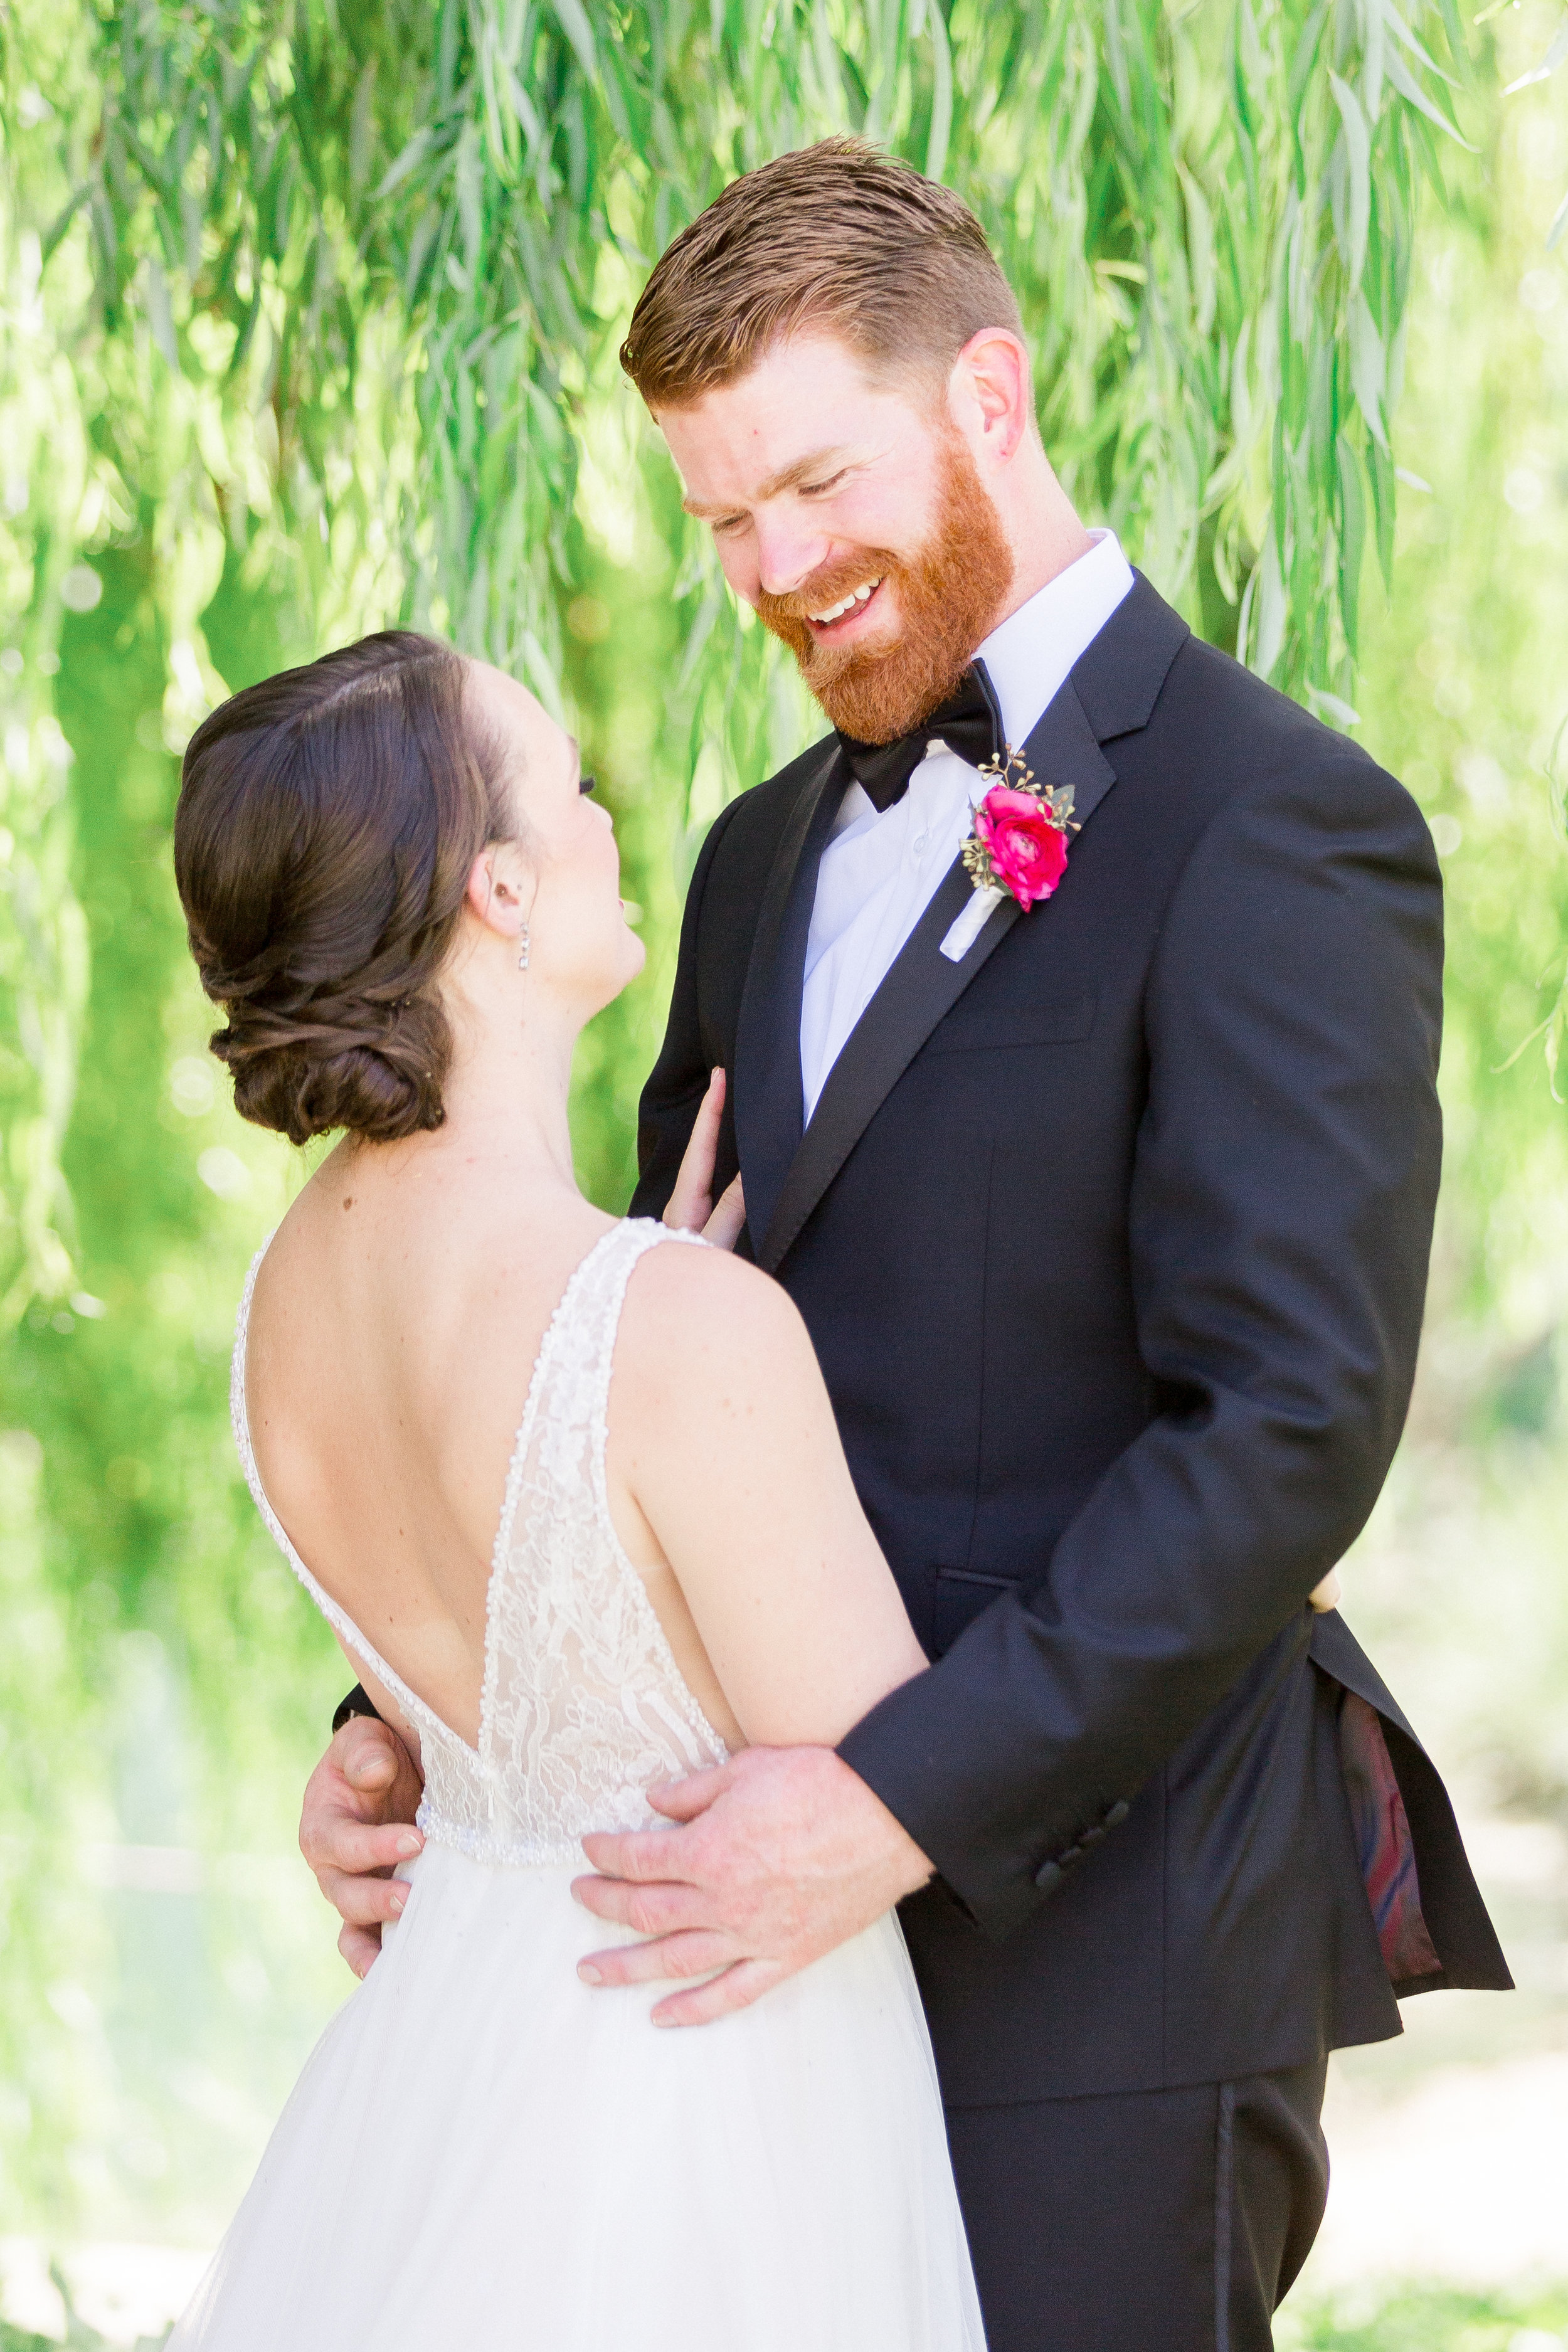 marriage-ceremony-at-white-ranch-events.jpg